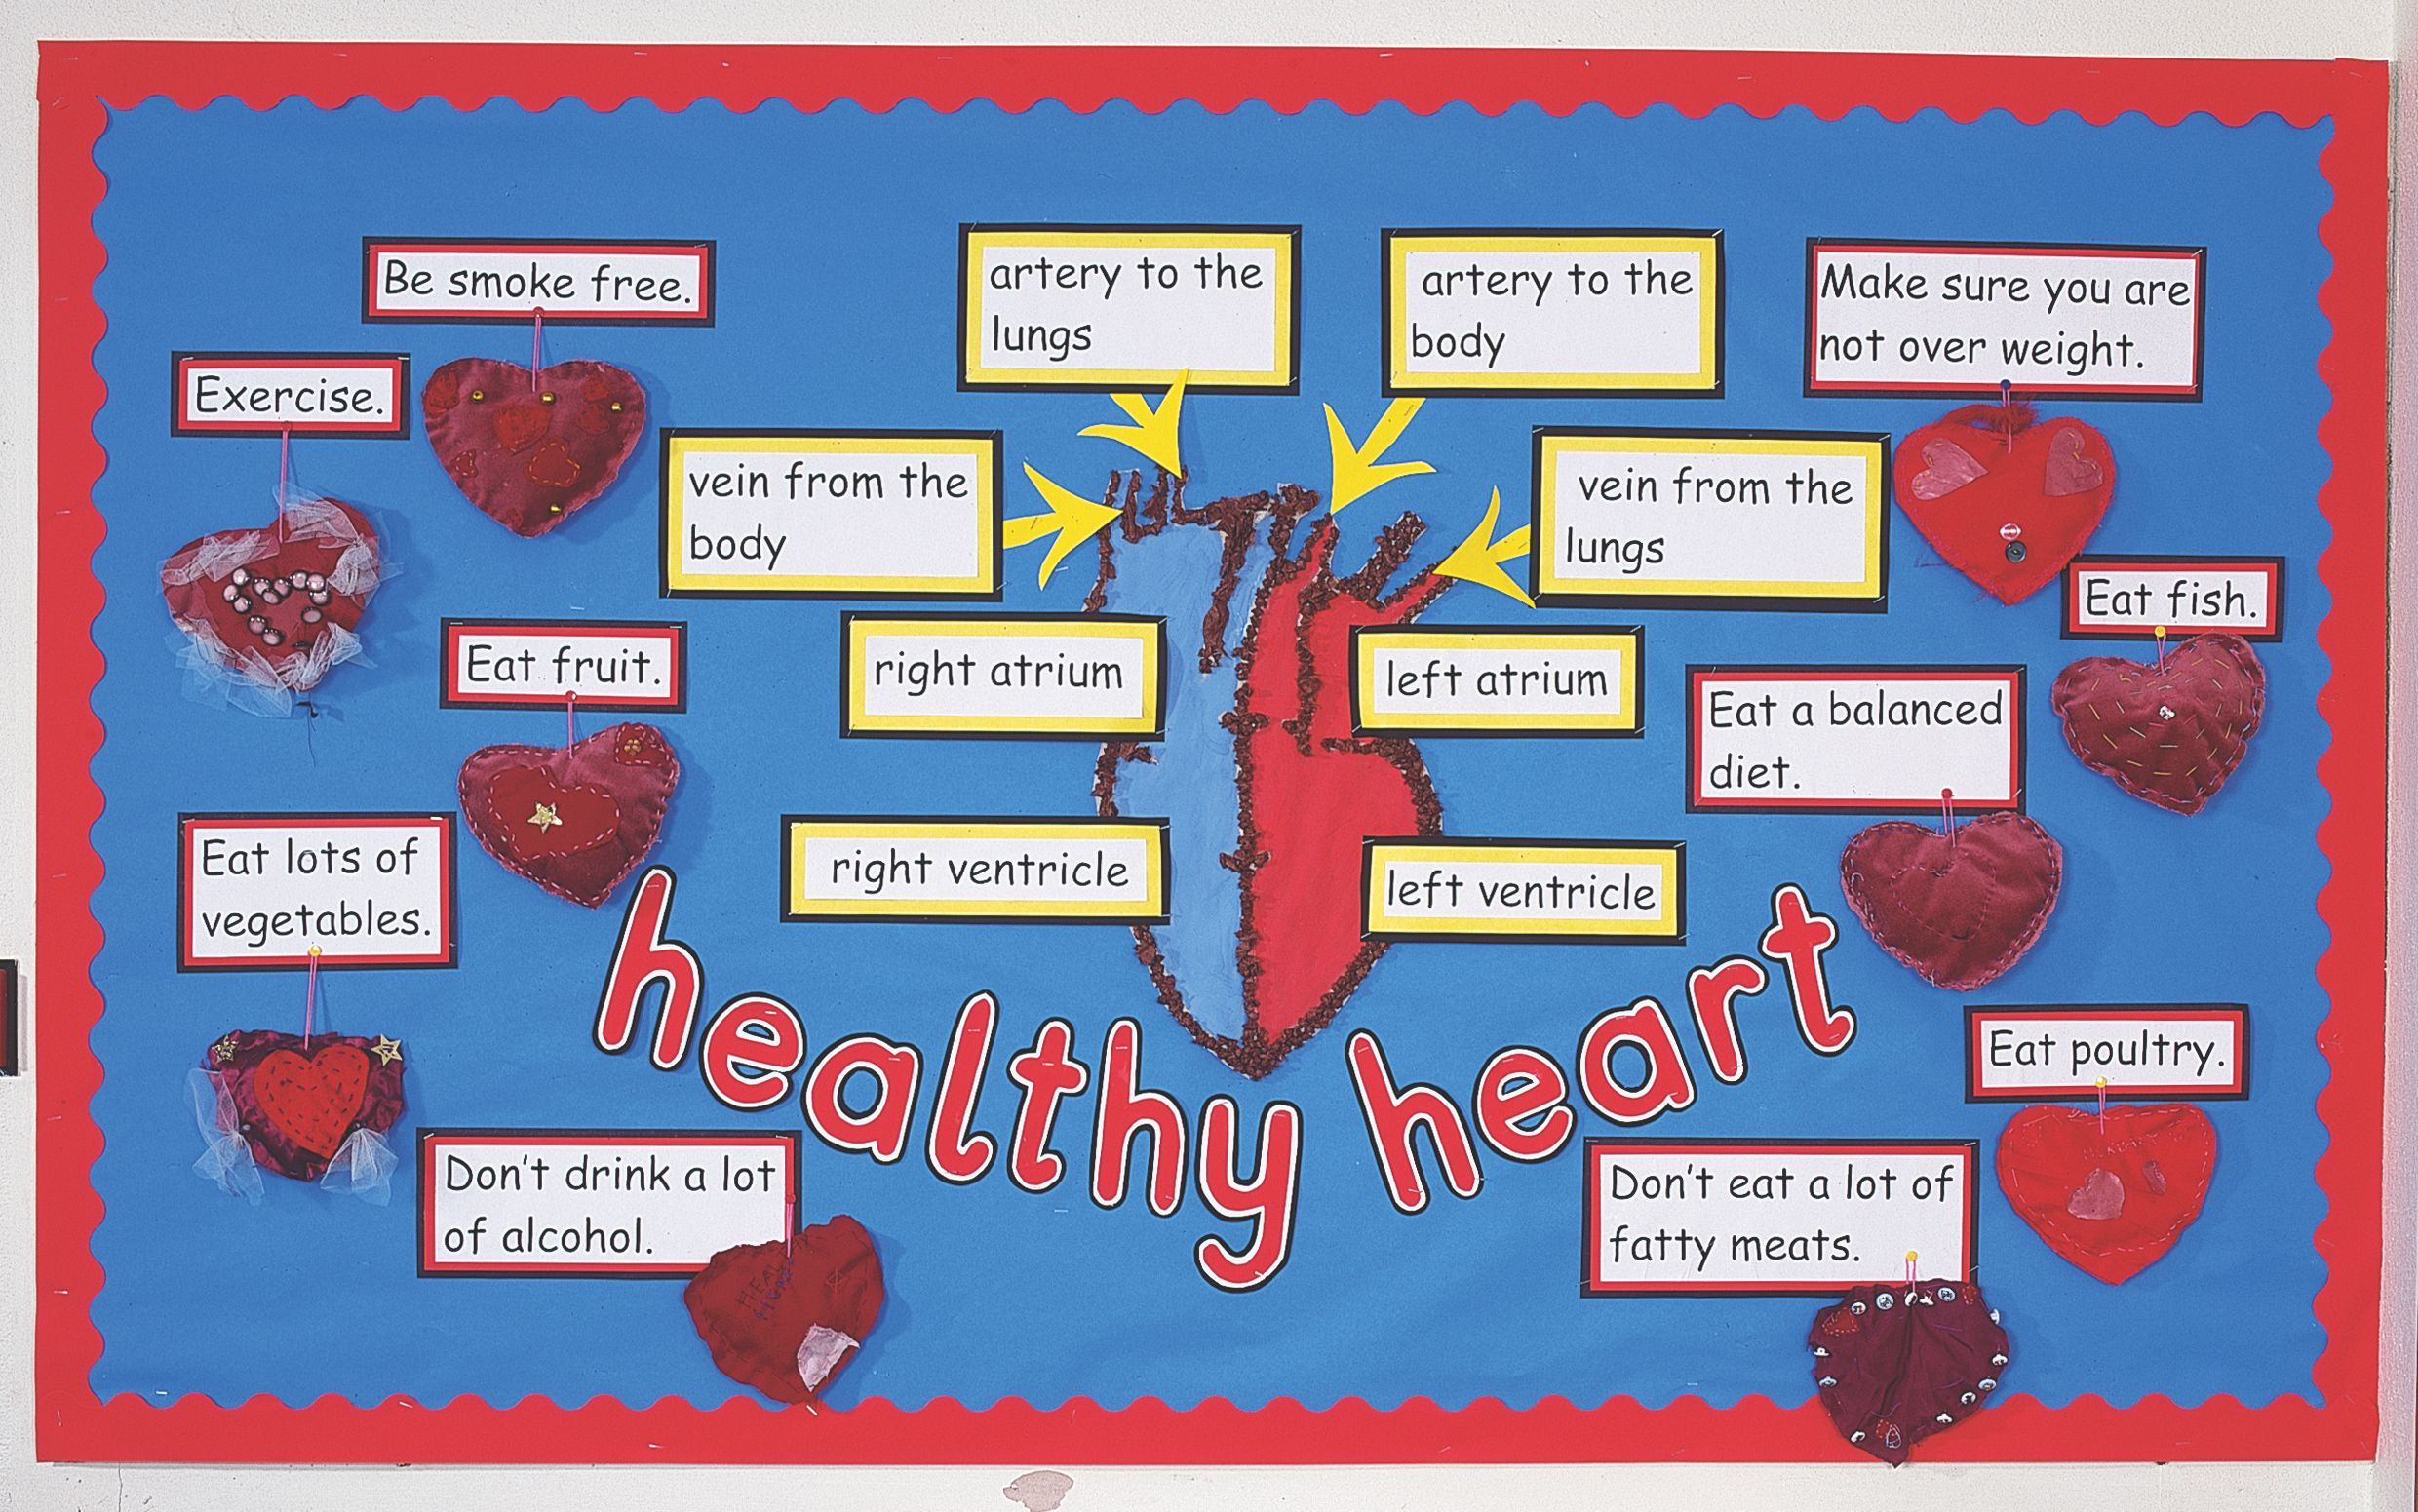 How Do You Keep Your Heart Healthy